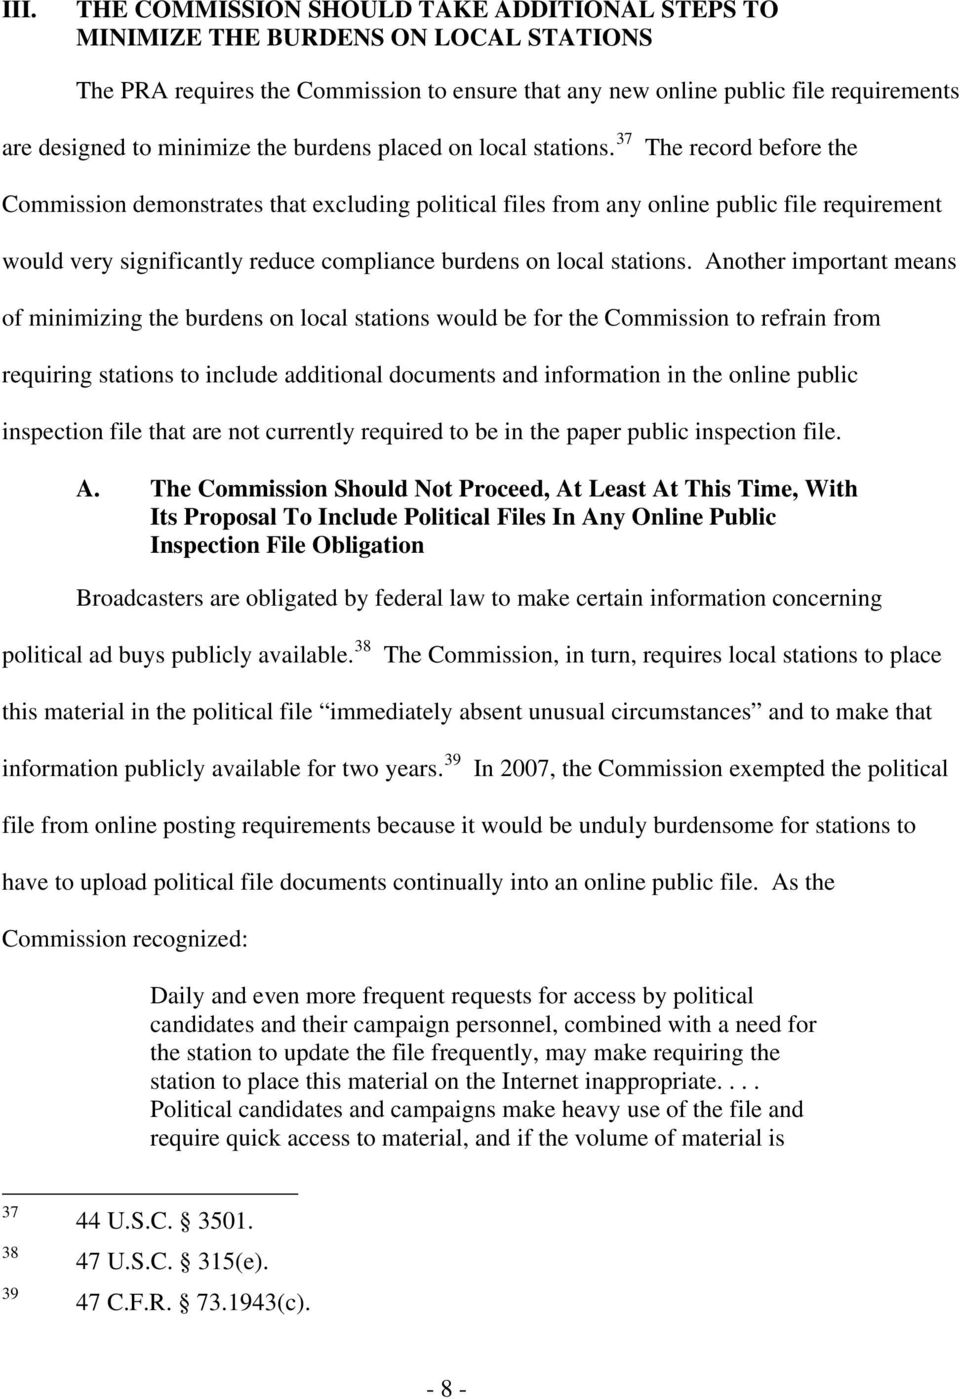 37 The record before the Commission demonstrates that excluding political files from any online public file requirement would very significantly reduce compliance burdens on local stations.